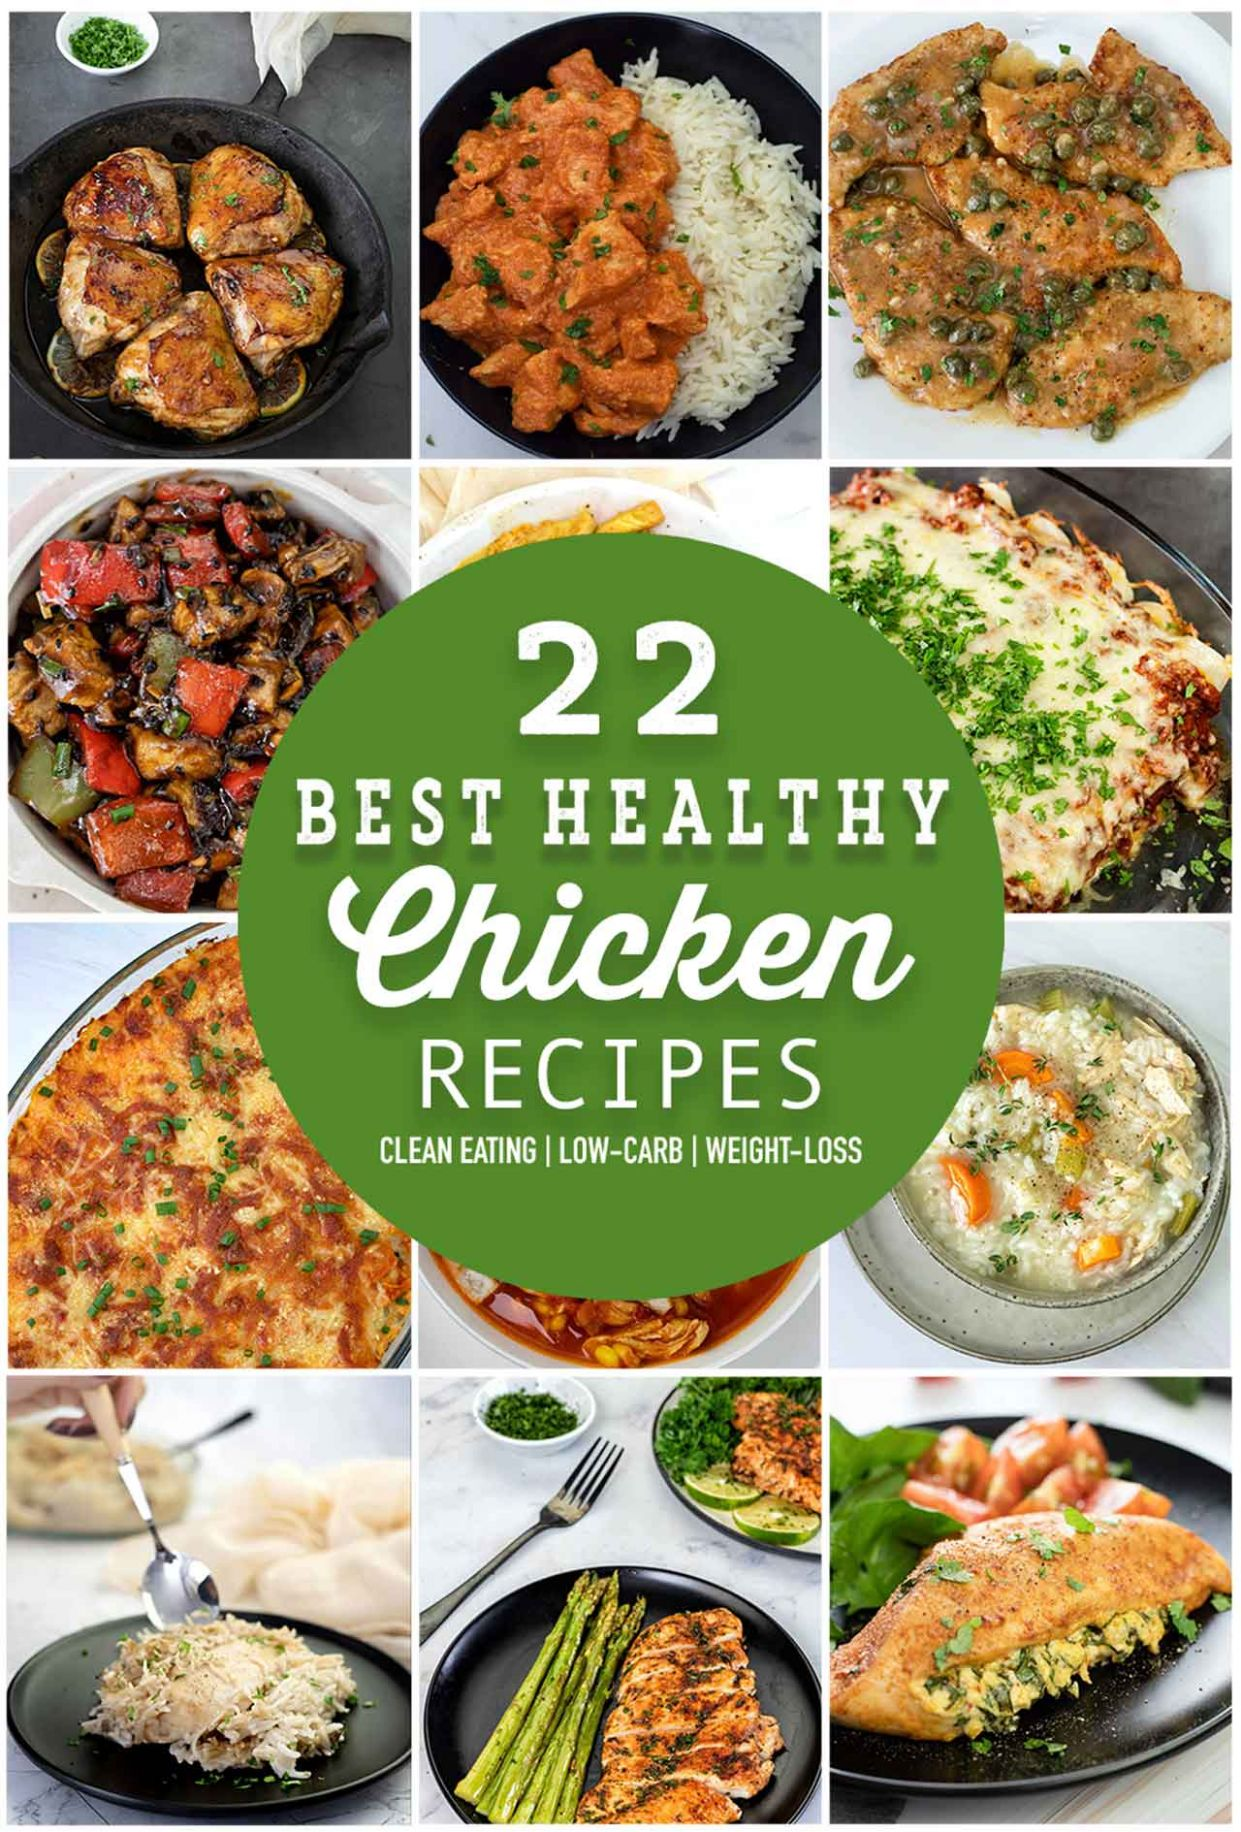 8 Best Healthy Chicken Recipes - A List For The White Meat Lovers - Healthy Recipes For Weight Loss With Chicken